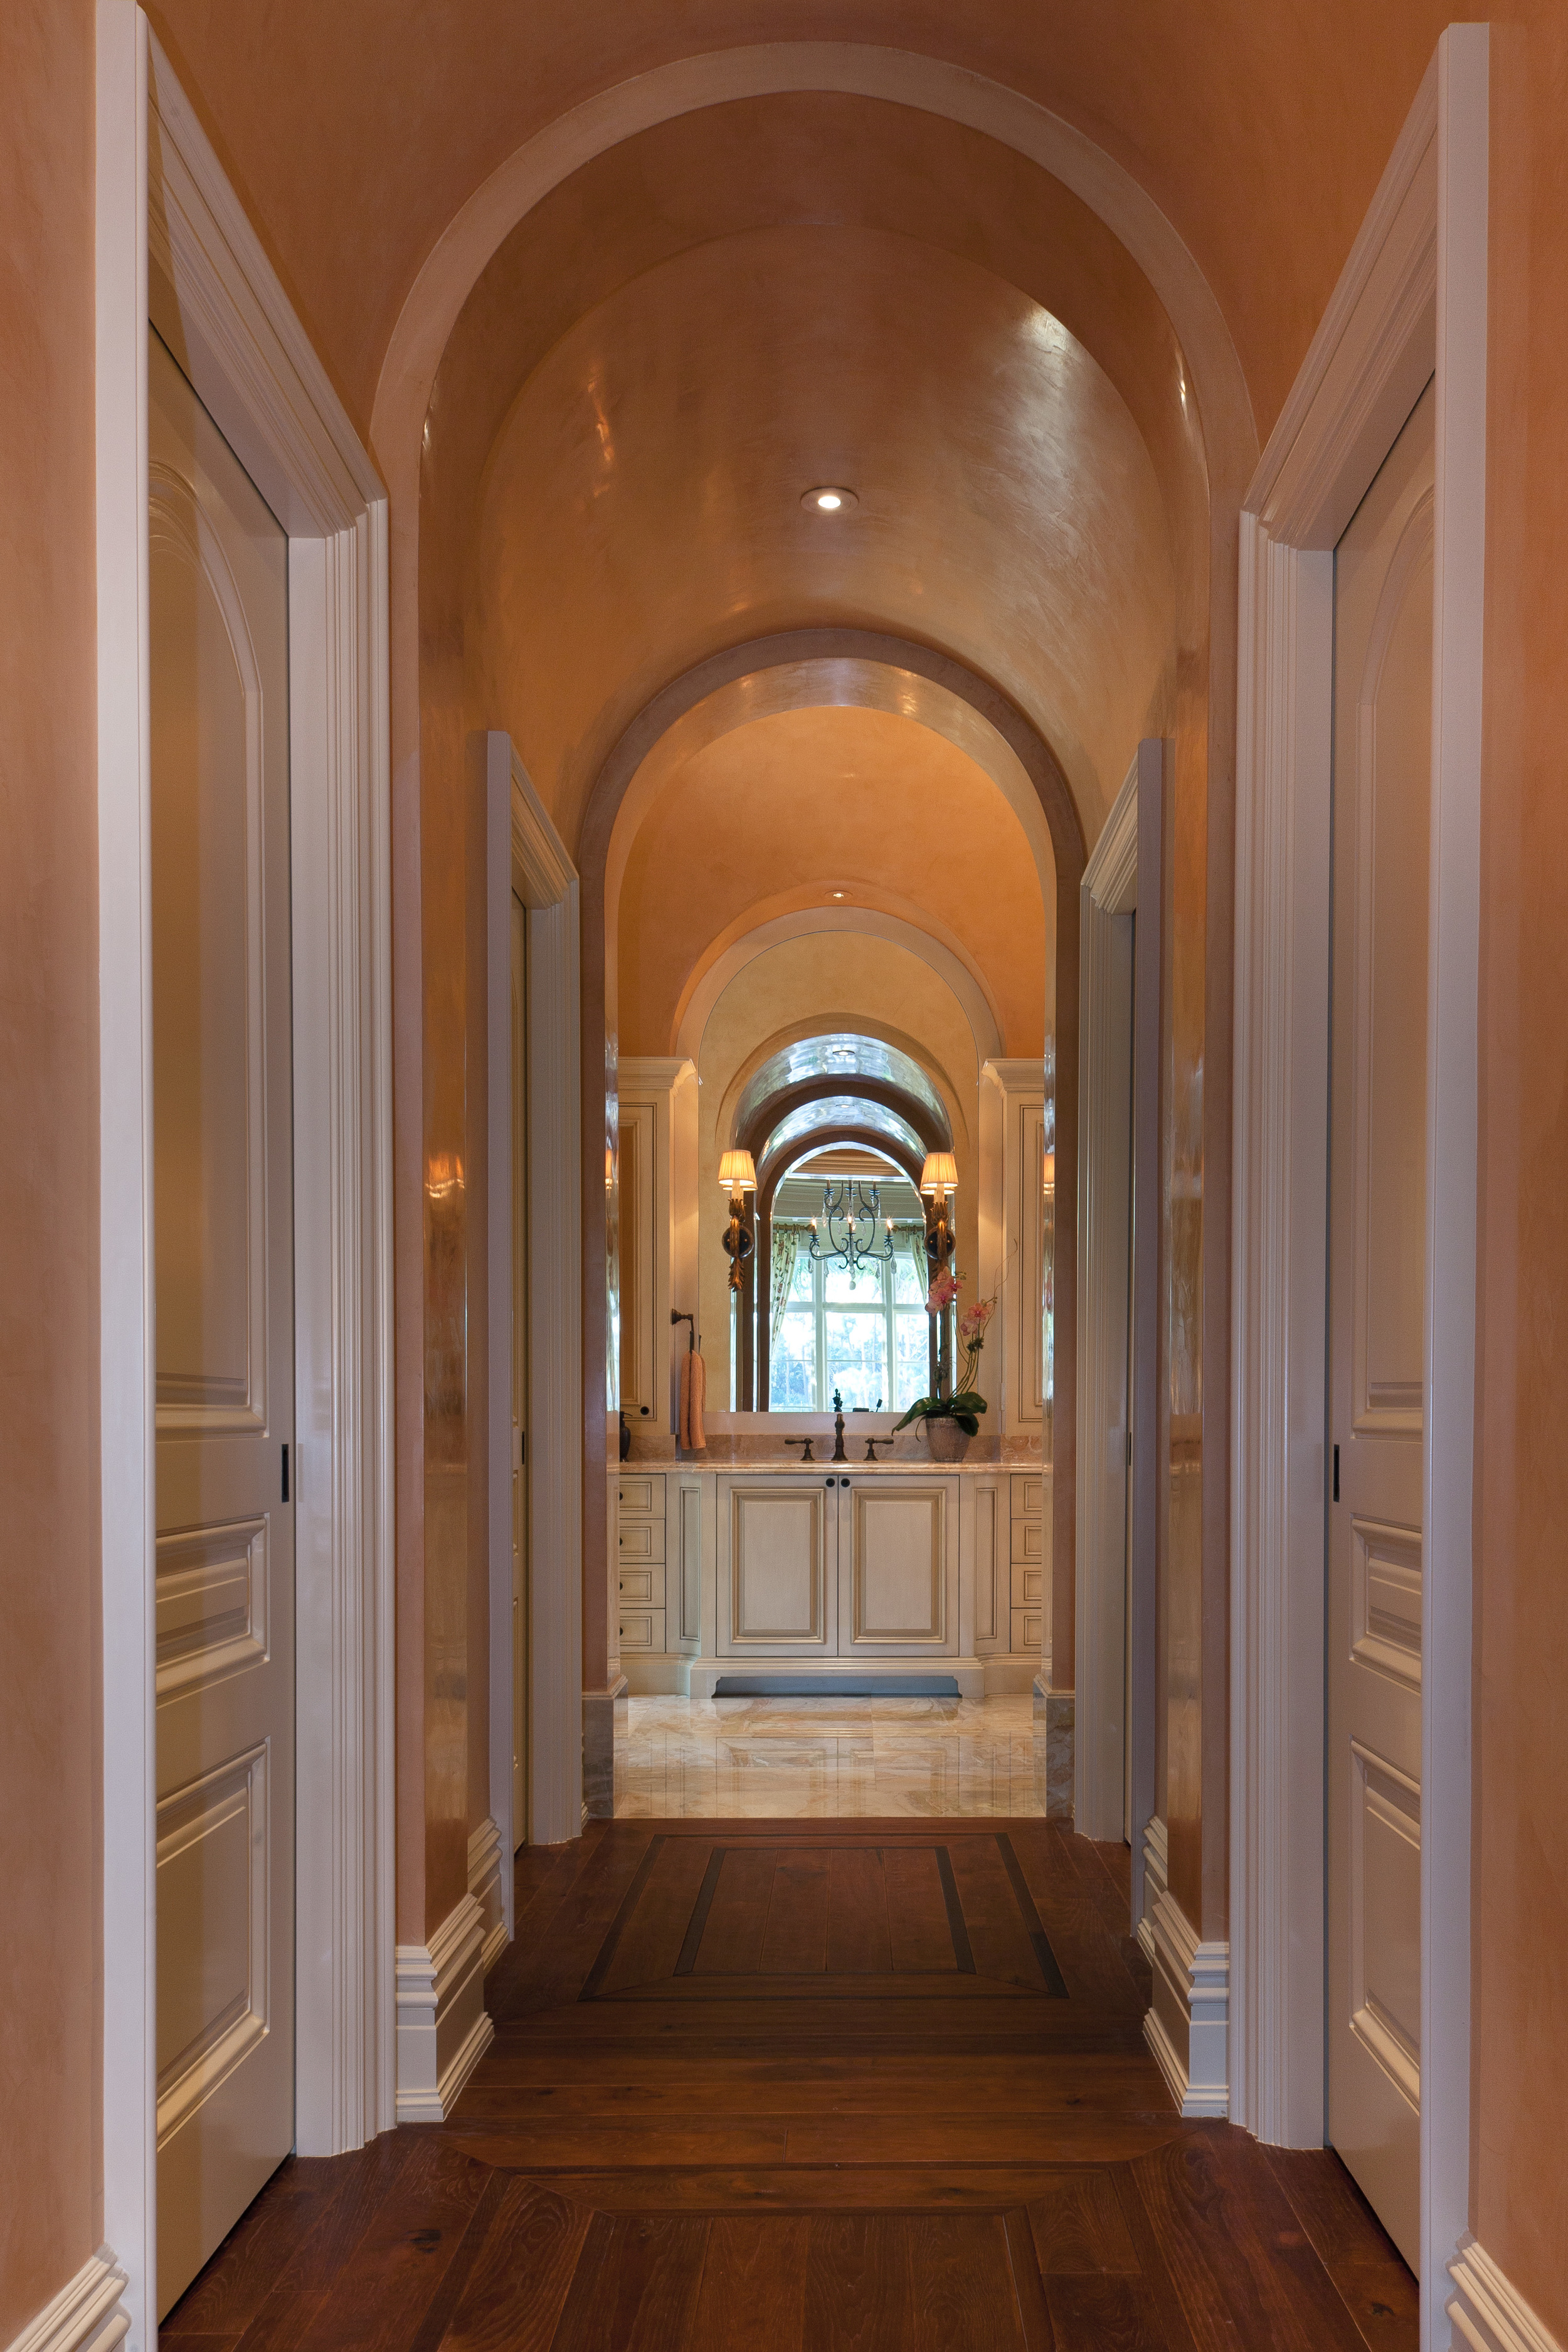 Seen from the master bedroom doorway, this short corridor leads to the master bath and incorporates openings to dressing rooms, toilet area and shower room on either side. The delicate archway and fine plaster finish reflect the other finishes in the home; the hickory flooring is used throughout, in diverse patterns. The gracefully detailed vanity cabinetry at the end of the corridor rises above breccia oniciata marble slab flooring.